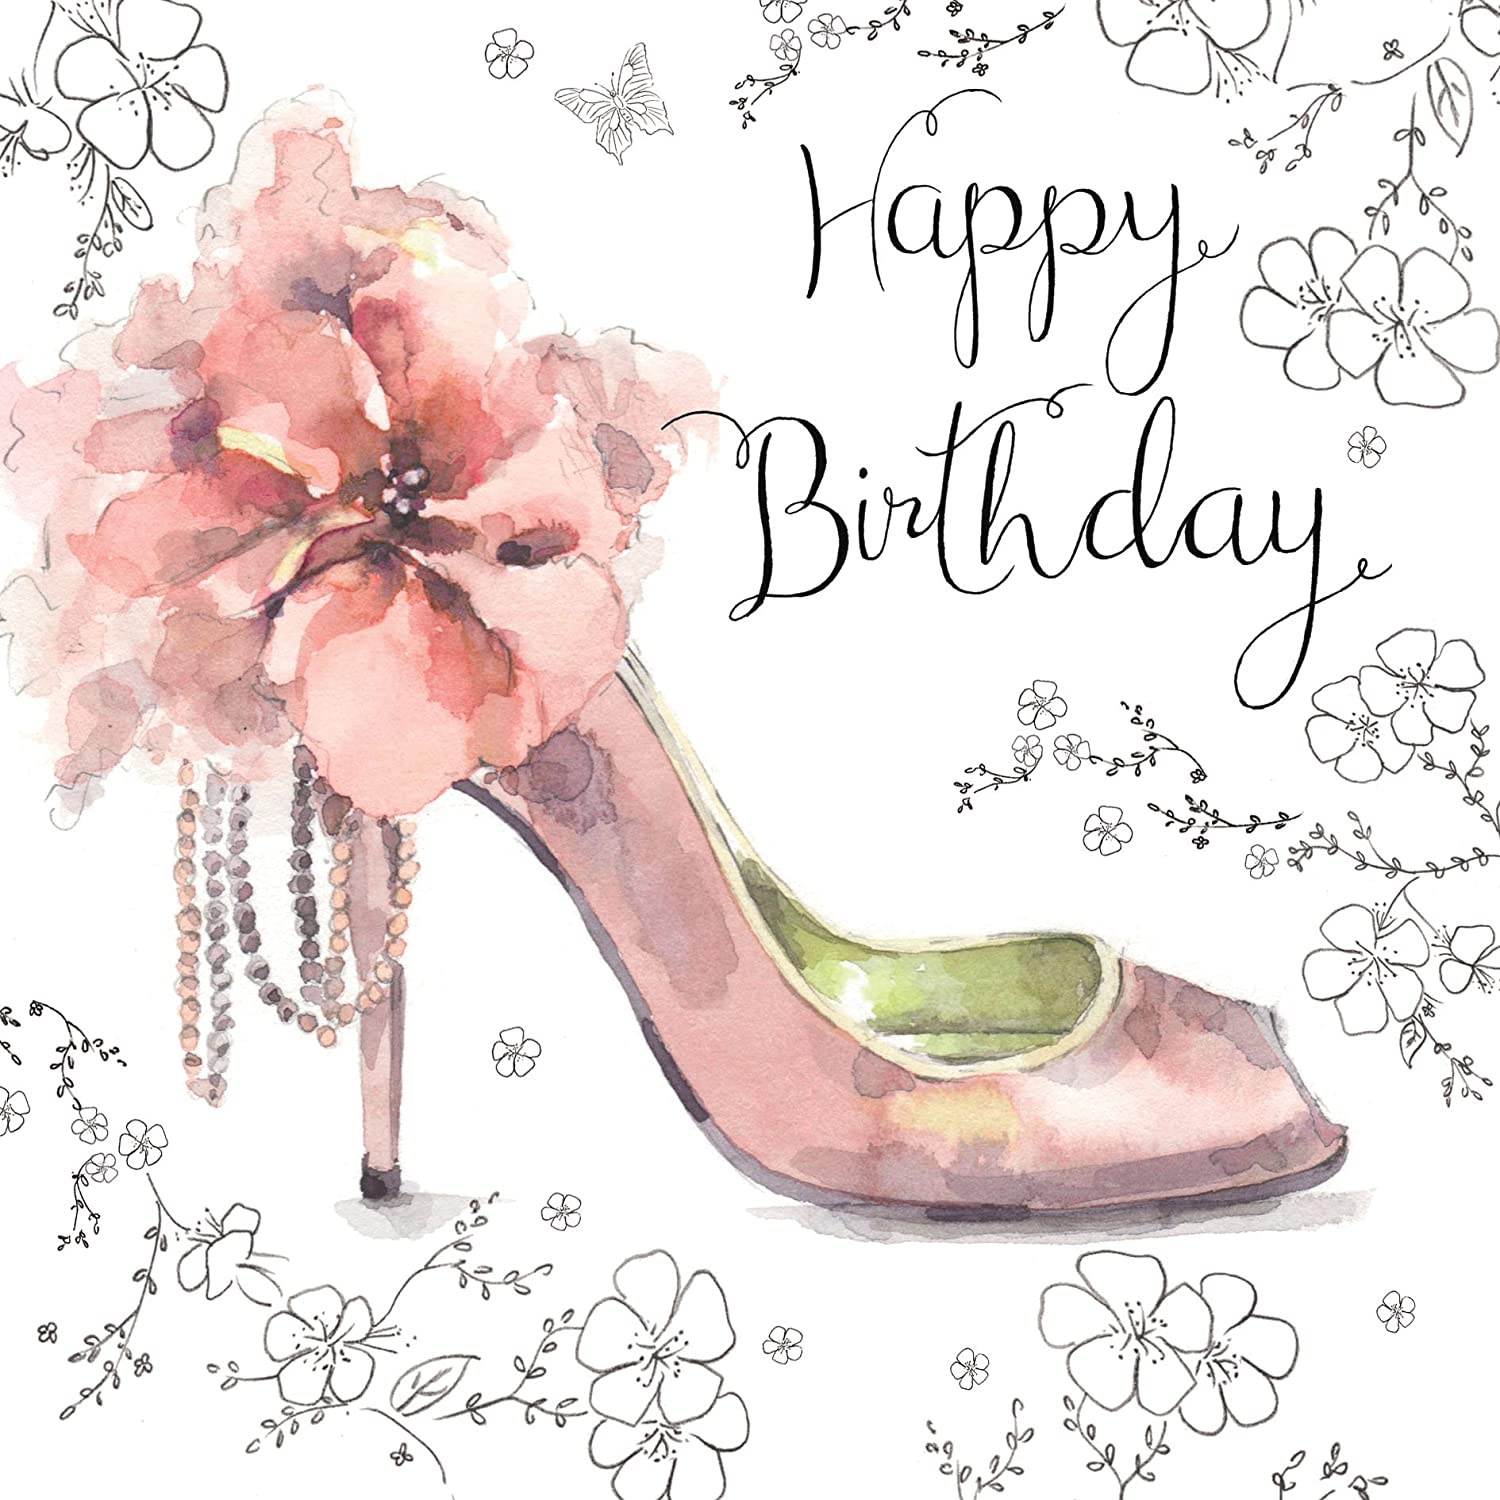 Twizler Happy Birthday Card For Her With Silver Foiling Unique Watercolour Effect And Pink Shoe